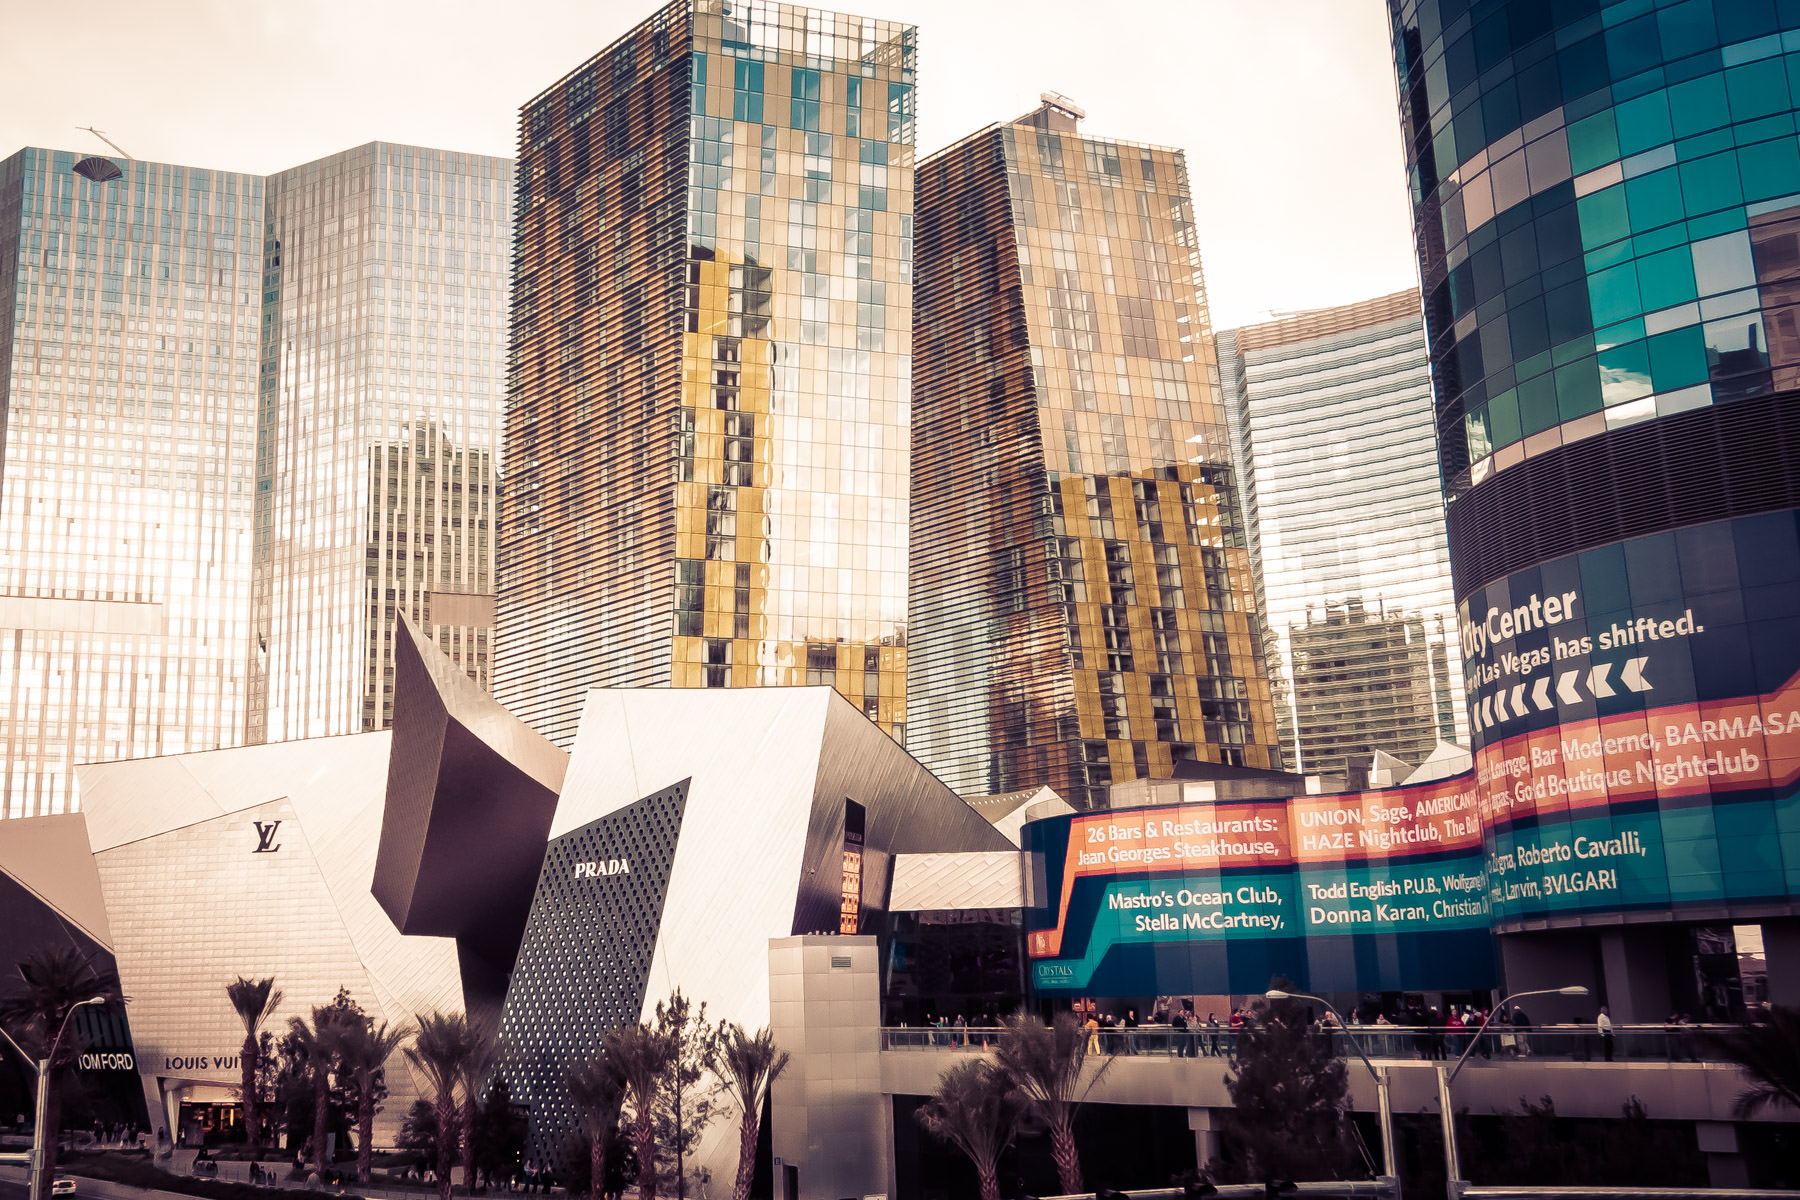 Las Vegas' CityCenter as seen from The Strip.